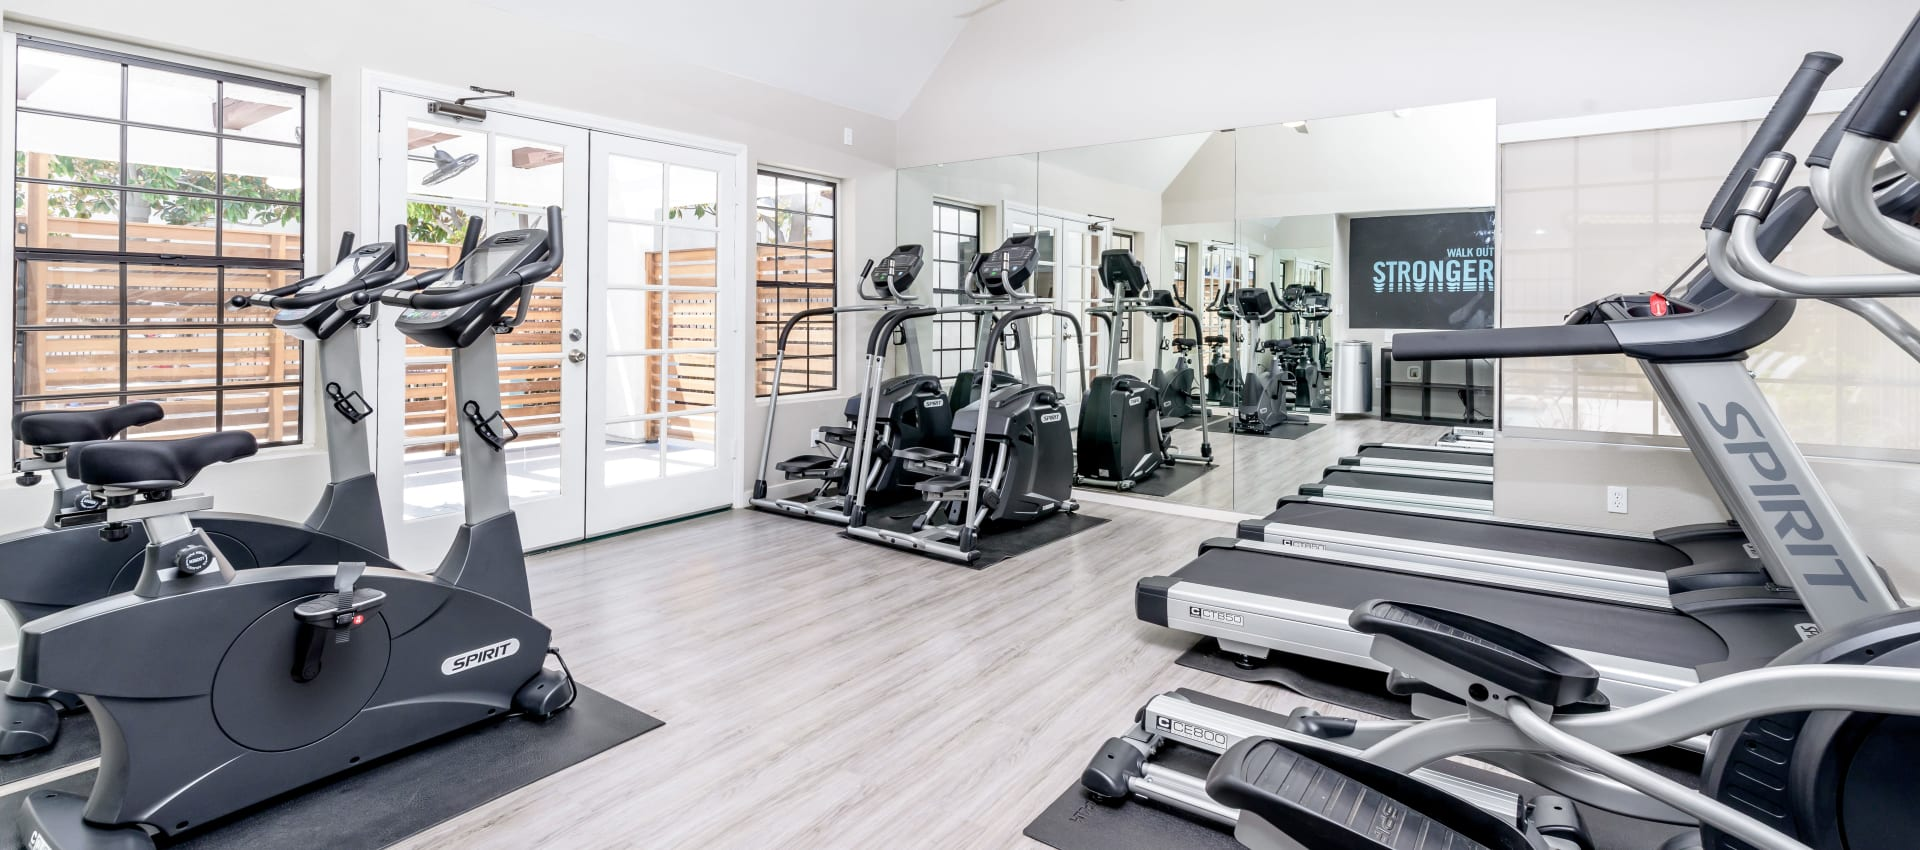 Fitness center at Sonora at Alta Loma in Alta Loma, California